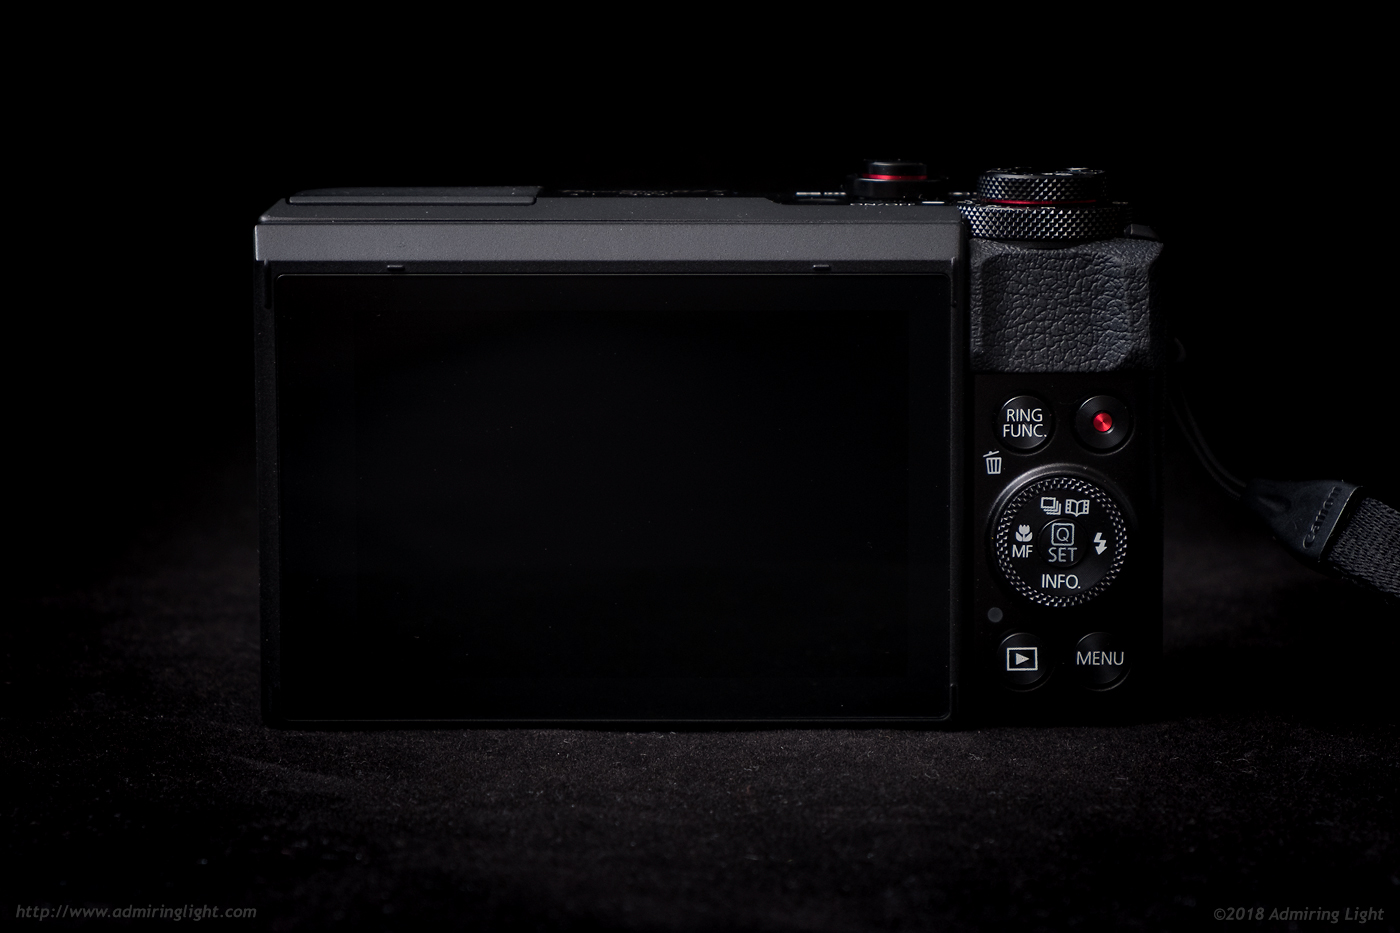 The rear of the Canon G7 X Mark II